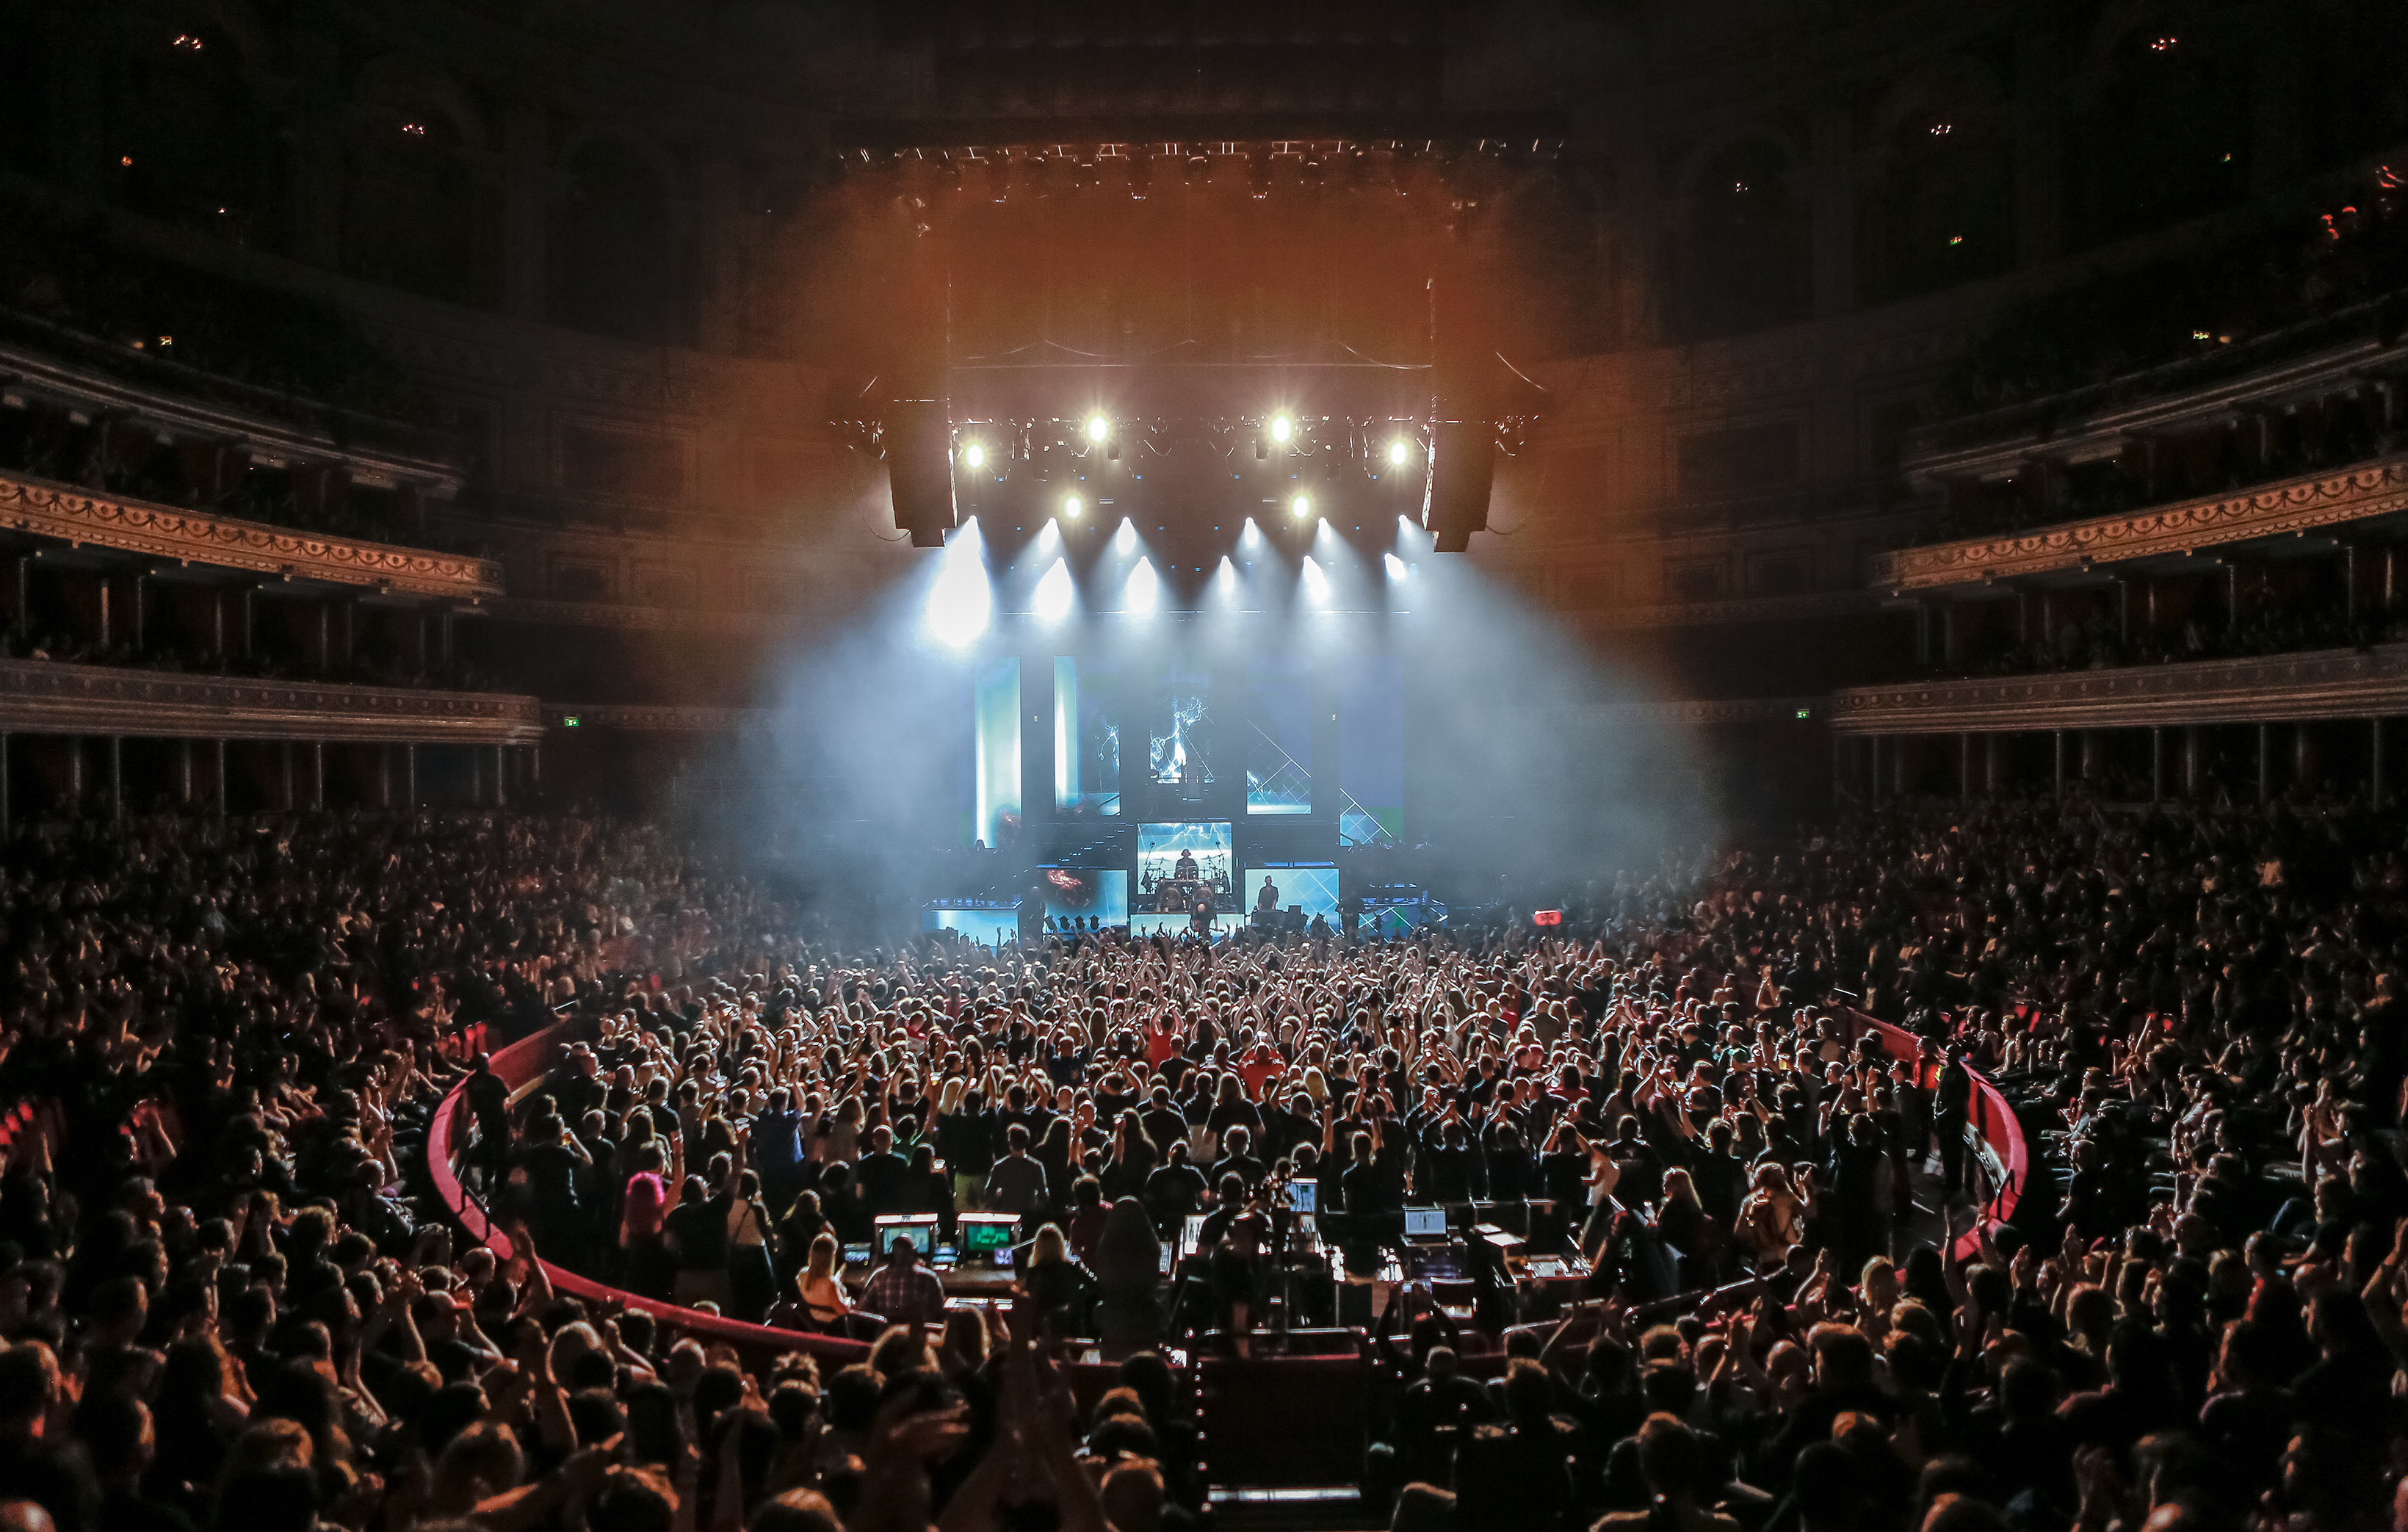 Innervisions Live at Royal Albert Hall